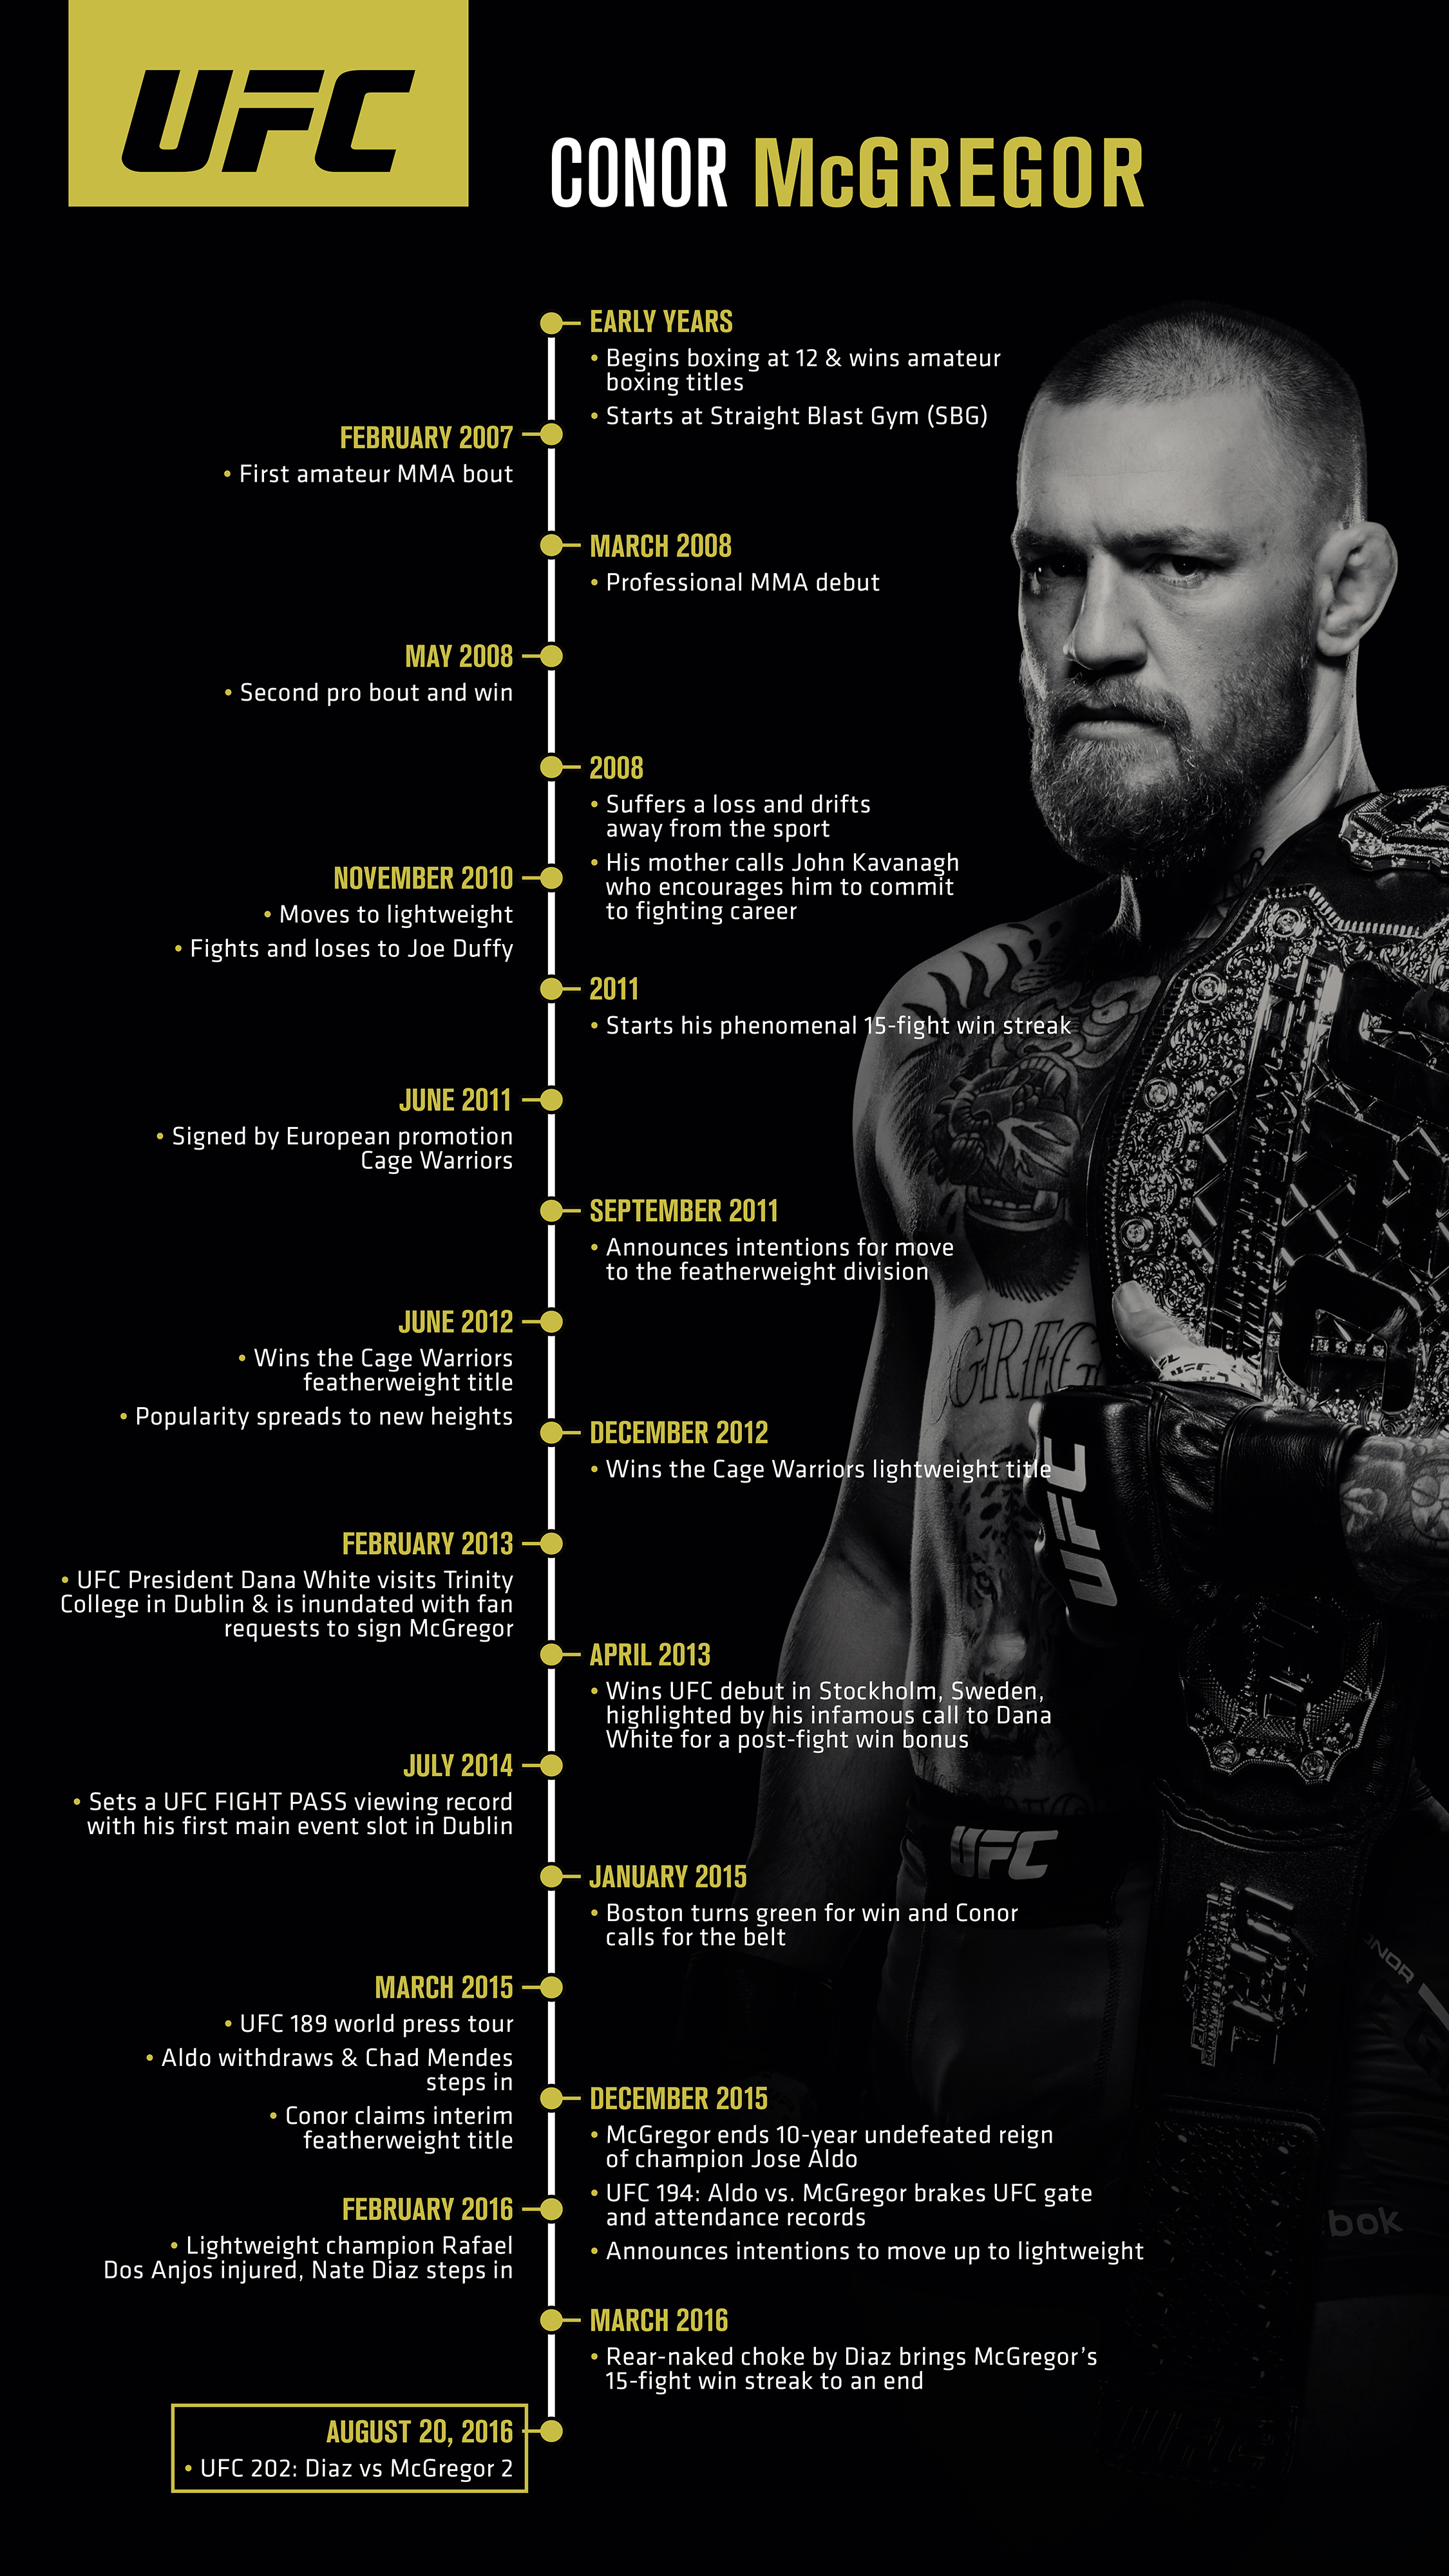 Conor McGregor - the story so far [Infographic]